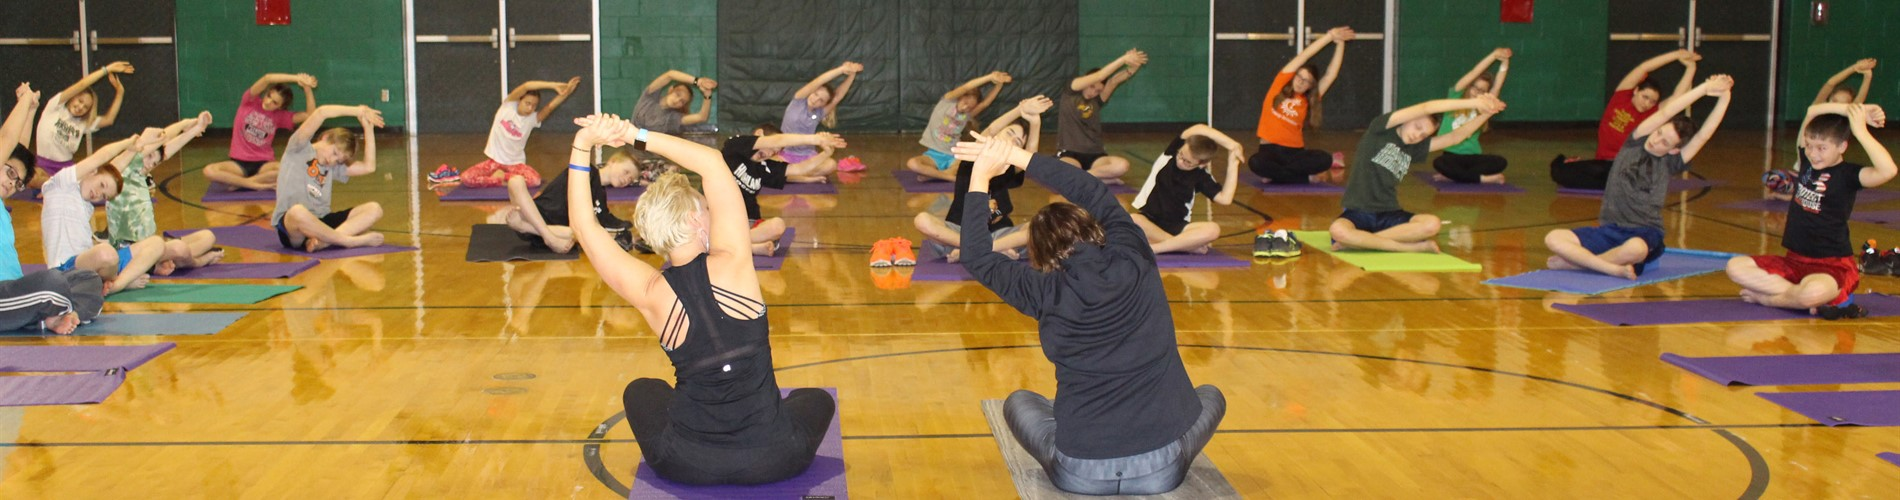 HMS Students Participate in Yoga Program